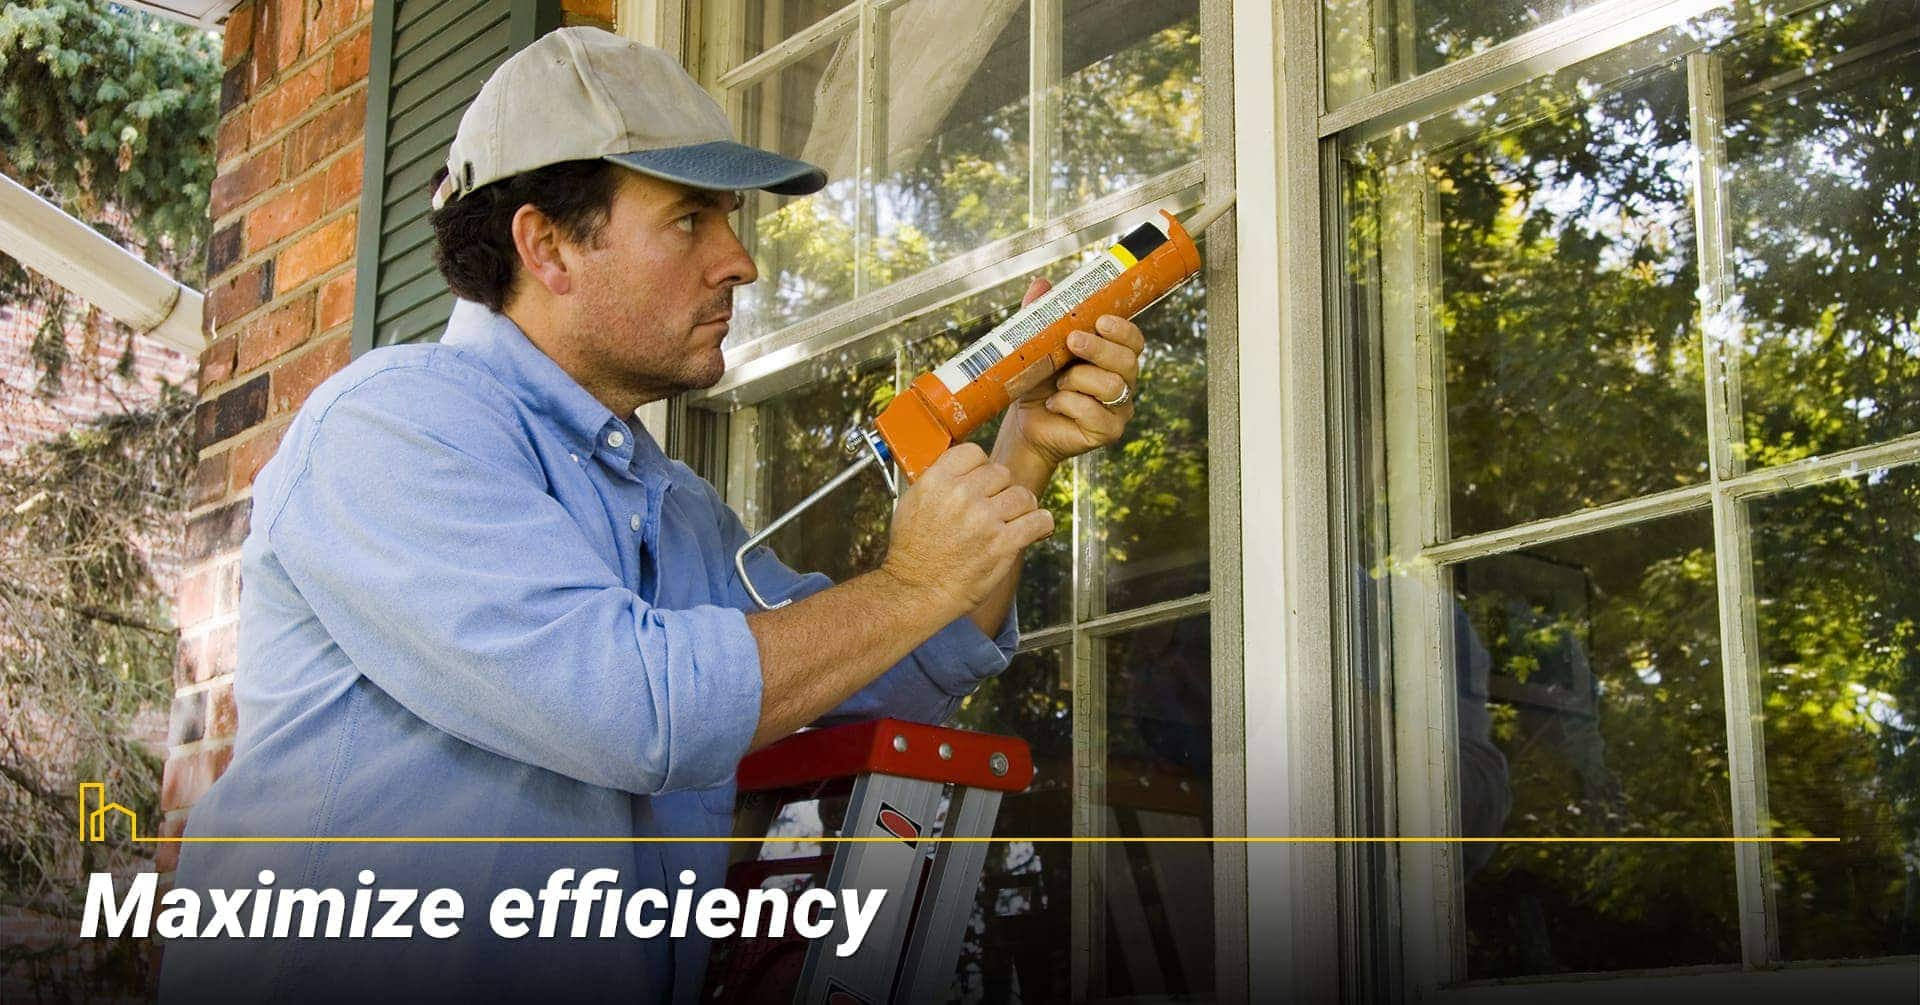 Maximize efficiency, energy efficiency